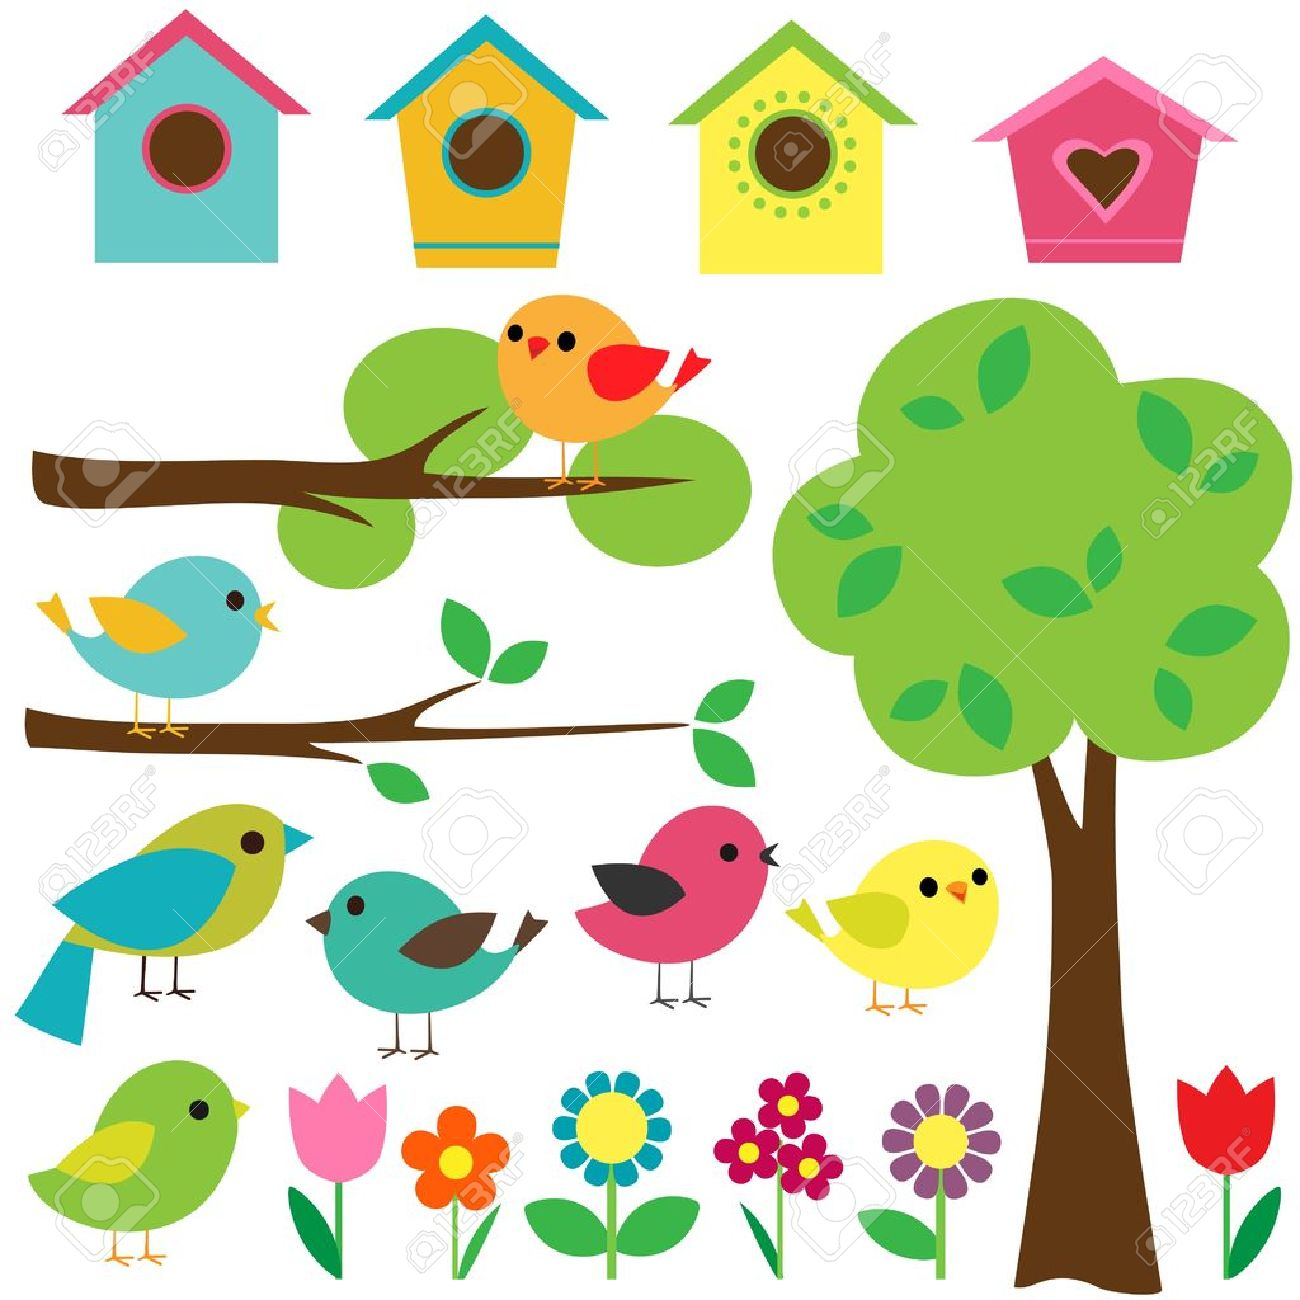 set birds with birdhouses trees and flowers royalty free cliparts rh 123rf com Cute Small Bird Clip Art Cute Small Bird Clip Art